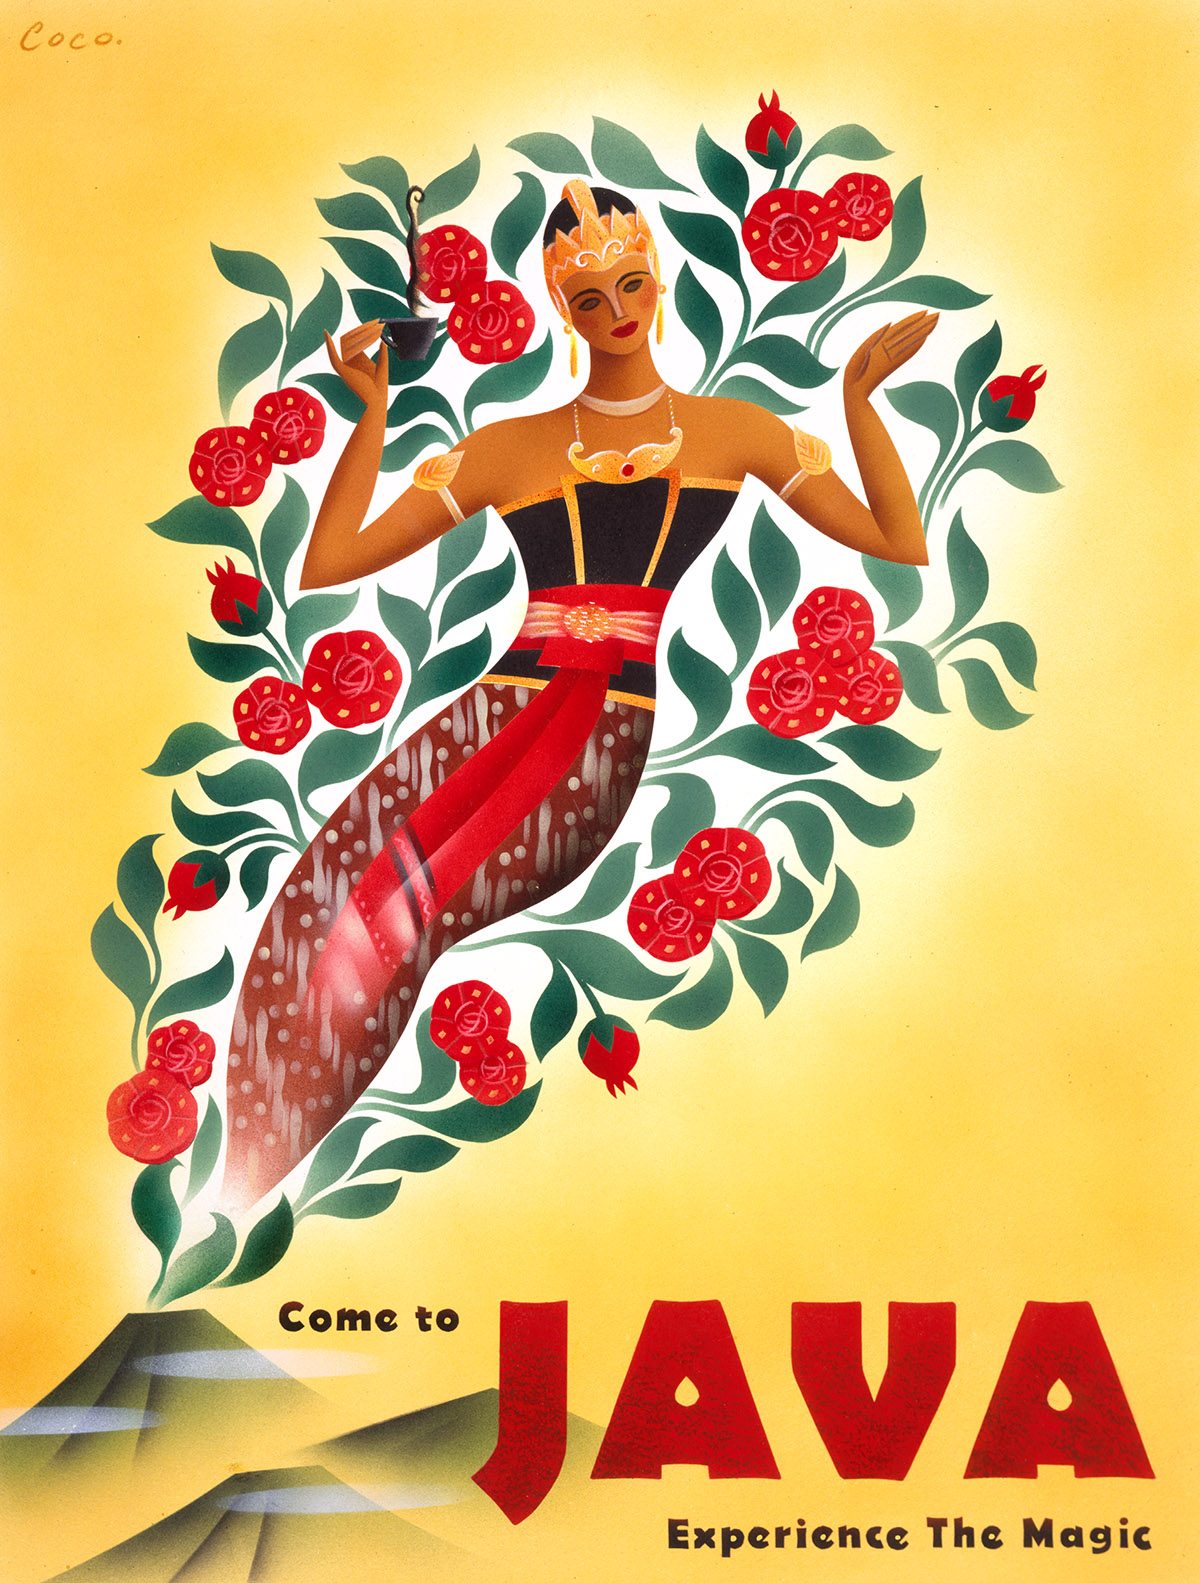 Come to Java